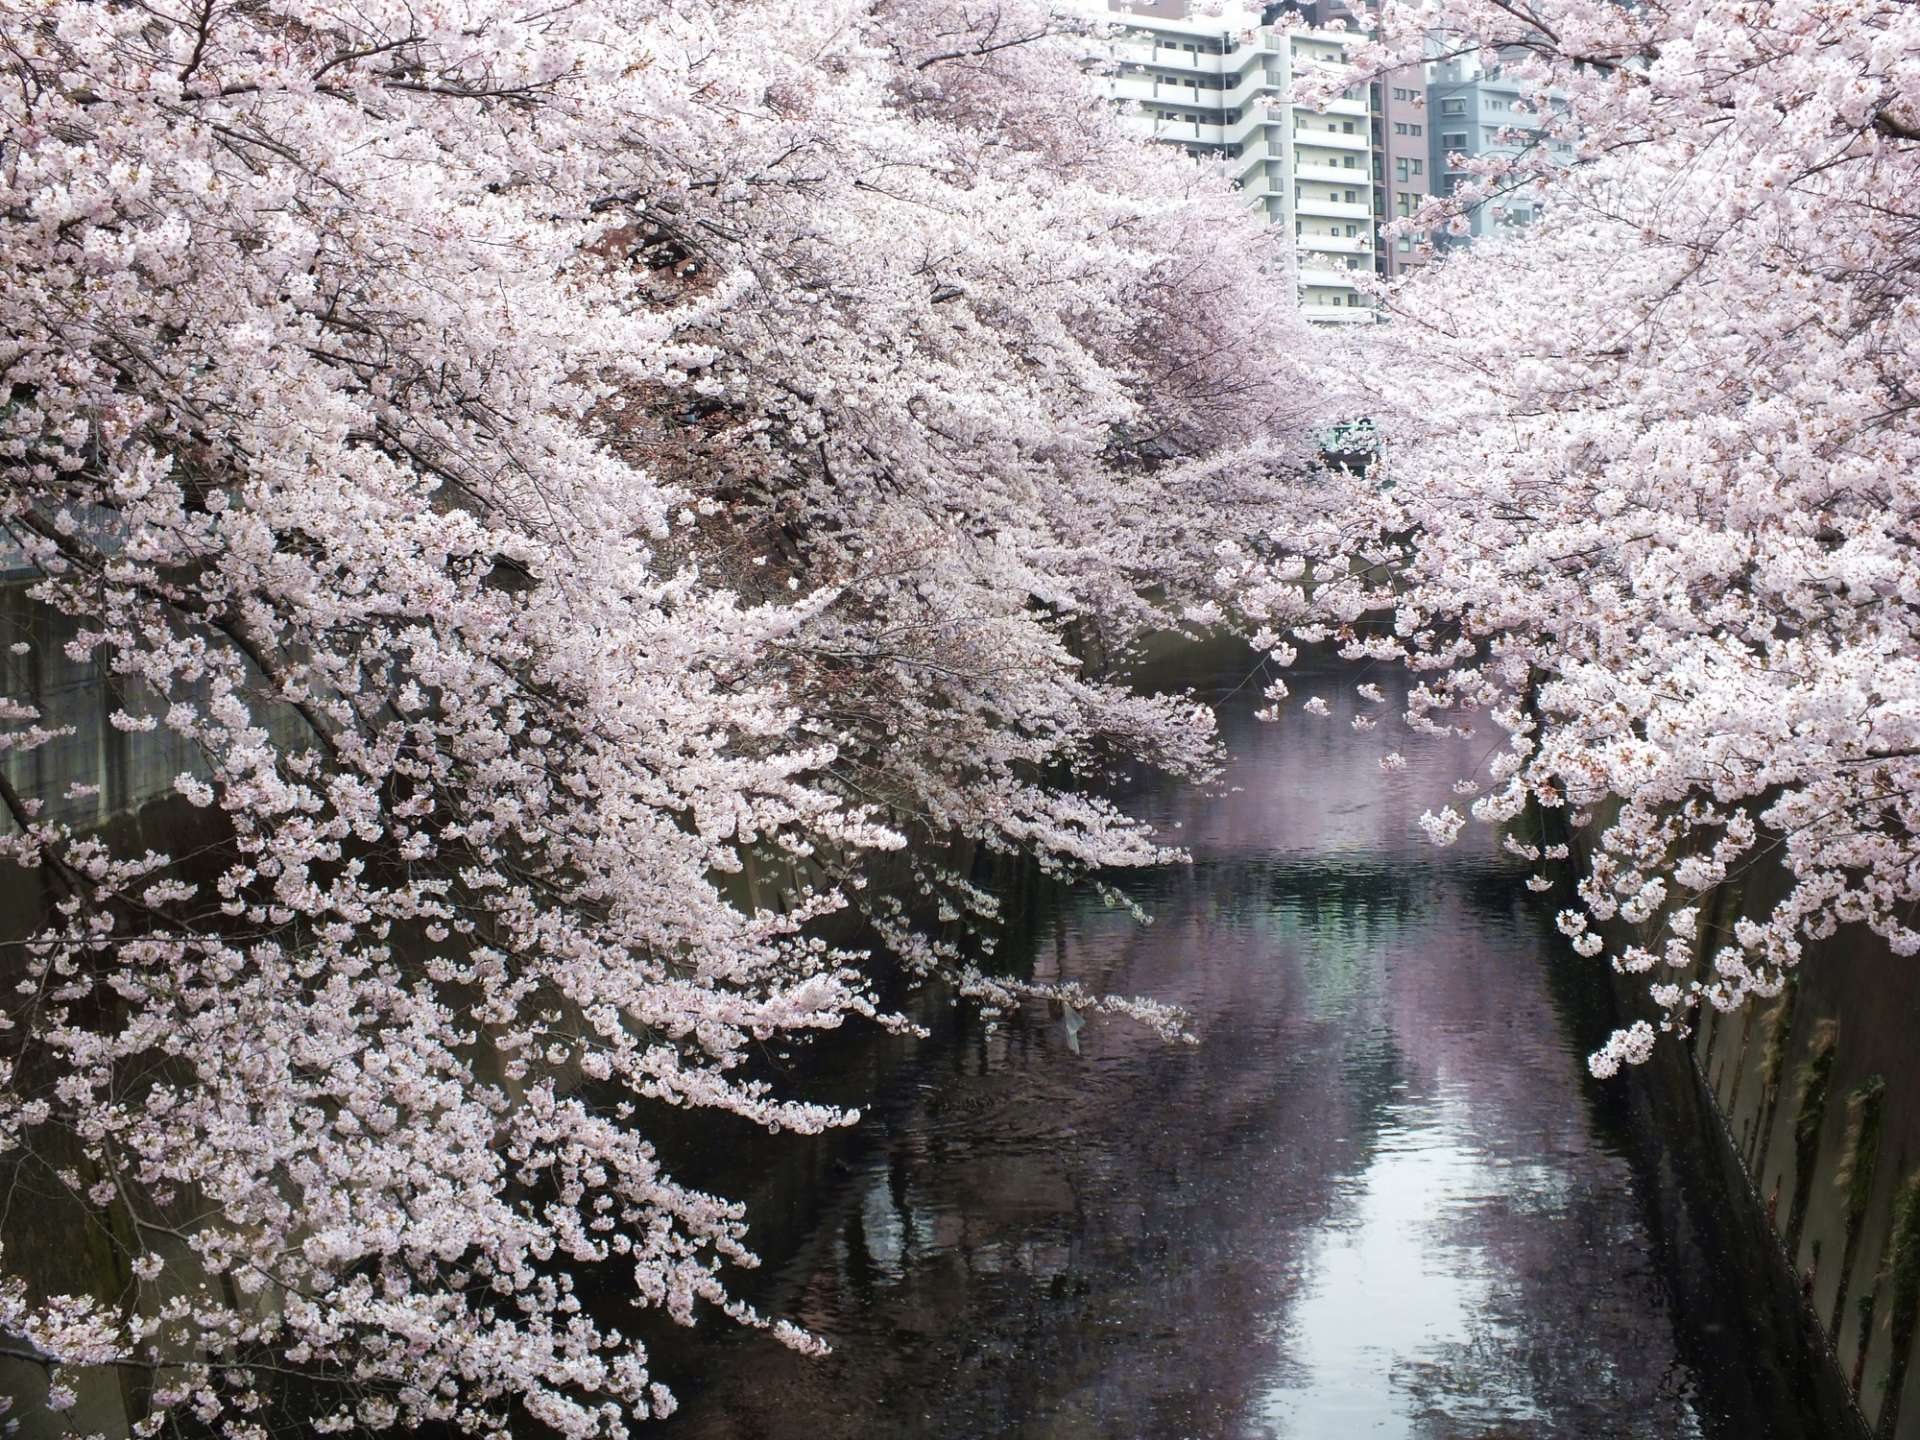 Cherry blossoms along the Kanda River, as seen from Omokagebashi Bridge